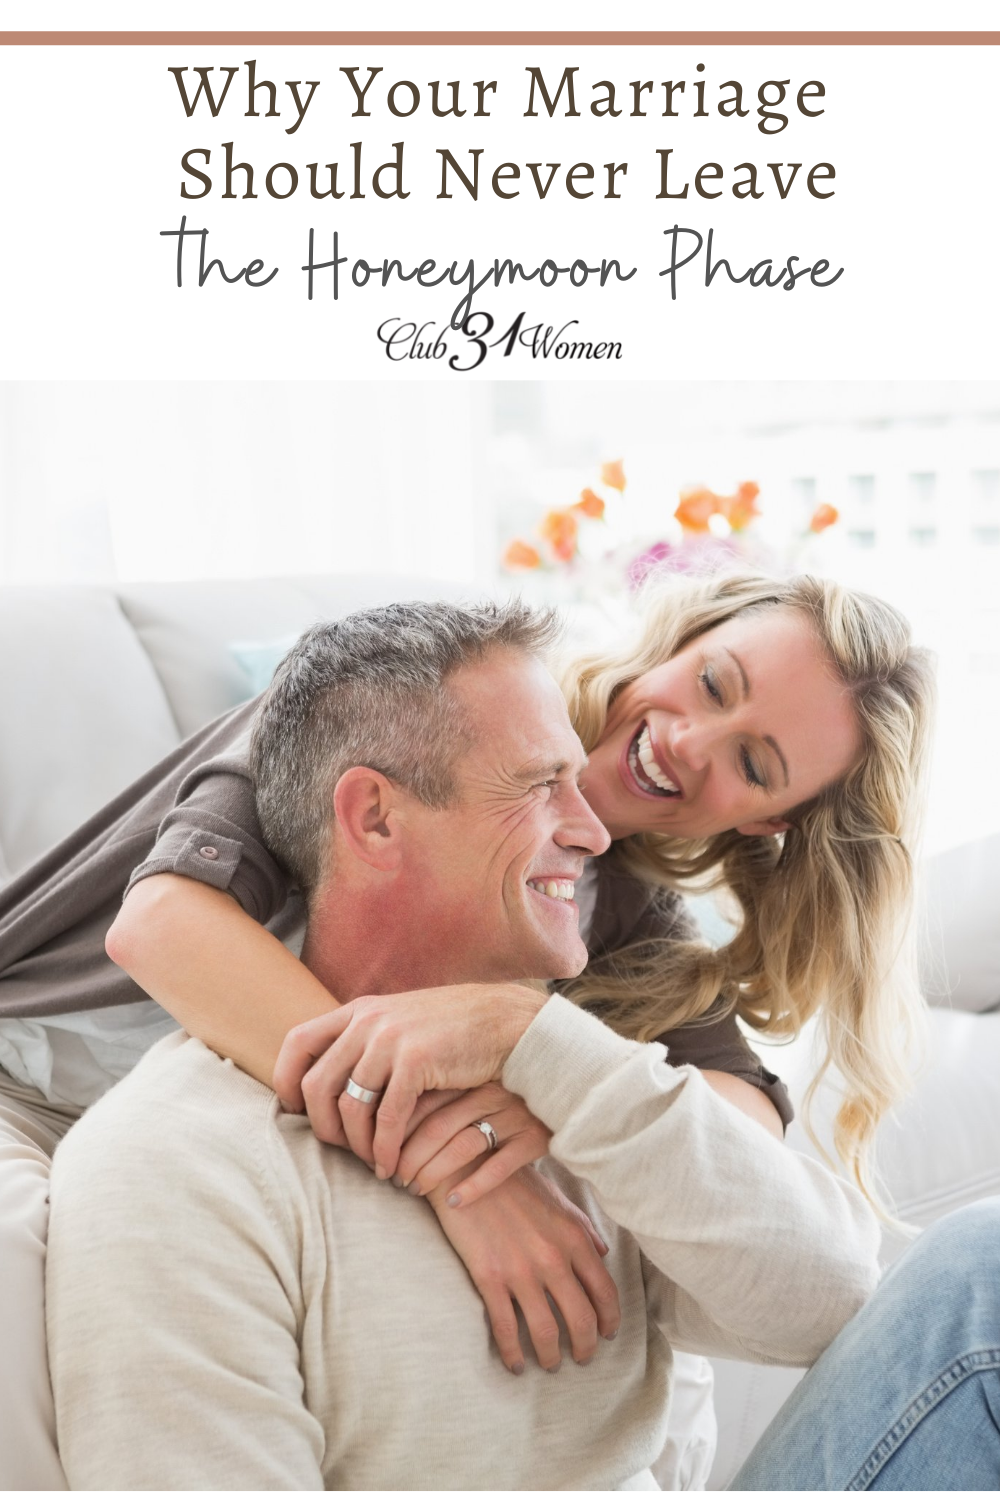 Marriages are struggling hard. We need to get back to that honeymoon phase and remember to cherish one another. via @Club31Women